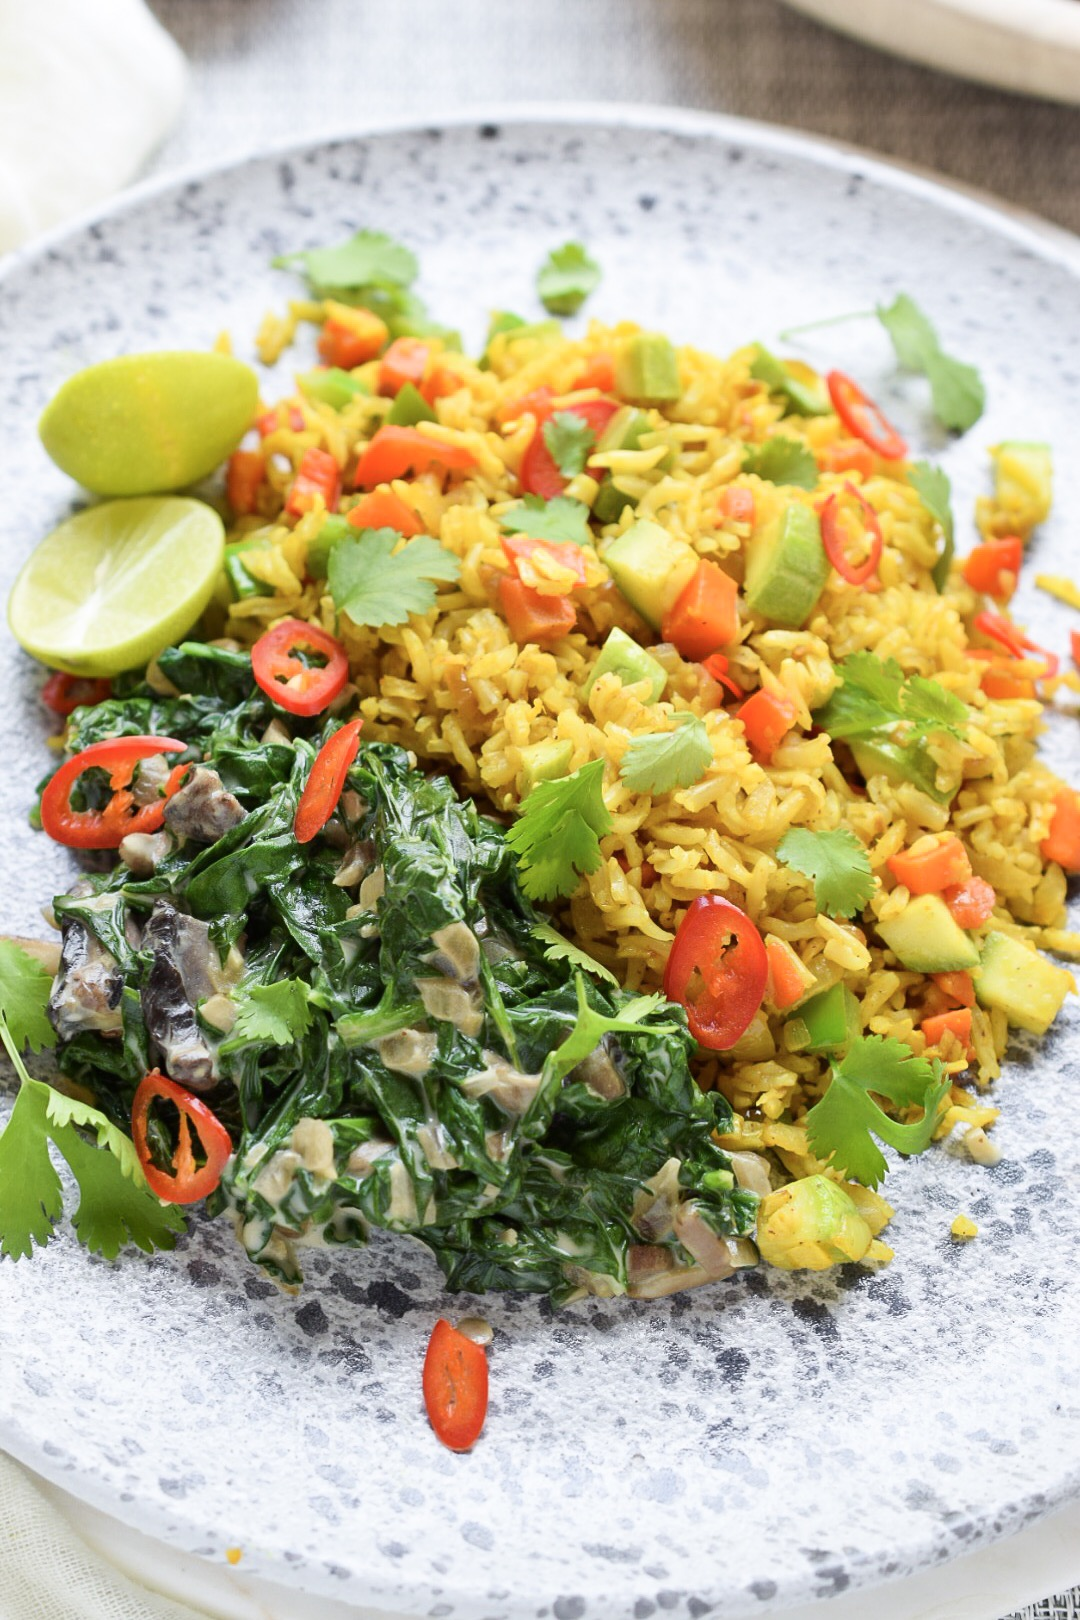 Dinner 1 - Spinach & Curried Rice